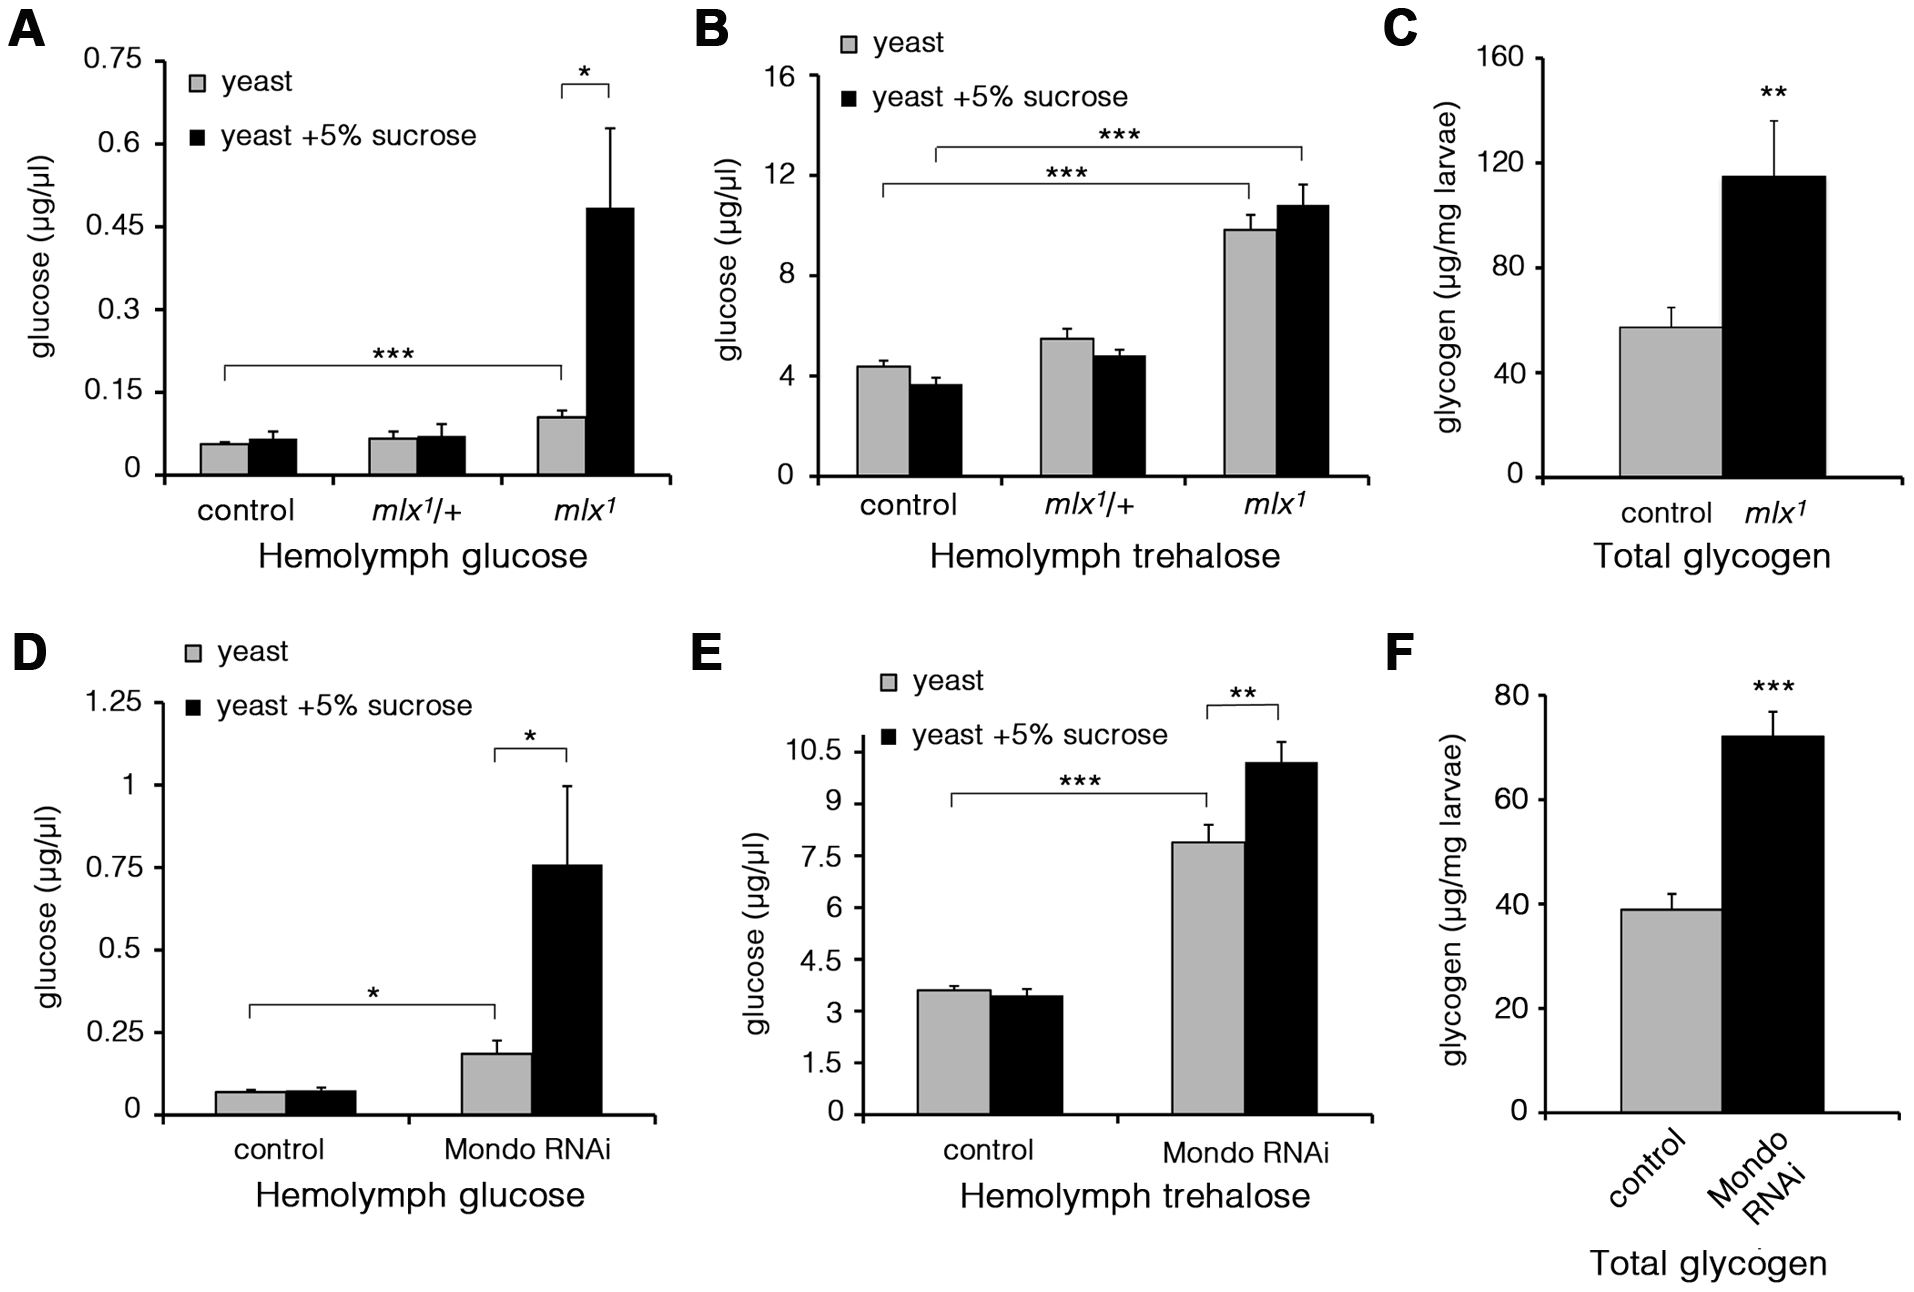 Elevated glucose, trehalose, and glycogen levels in the absence of Mondo-Mlx.